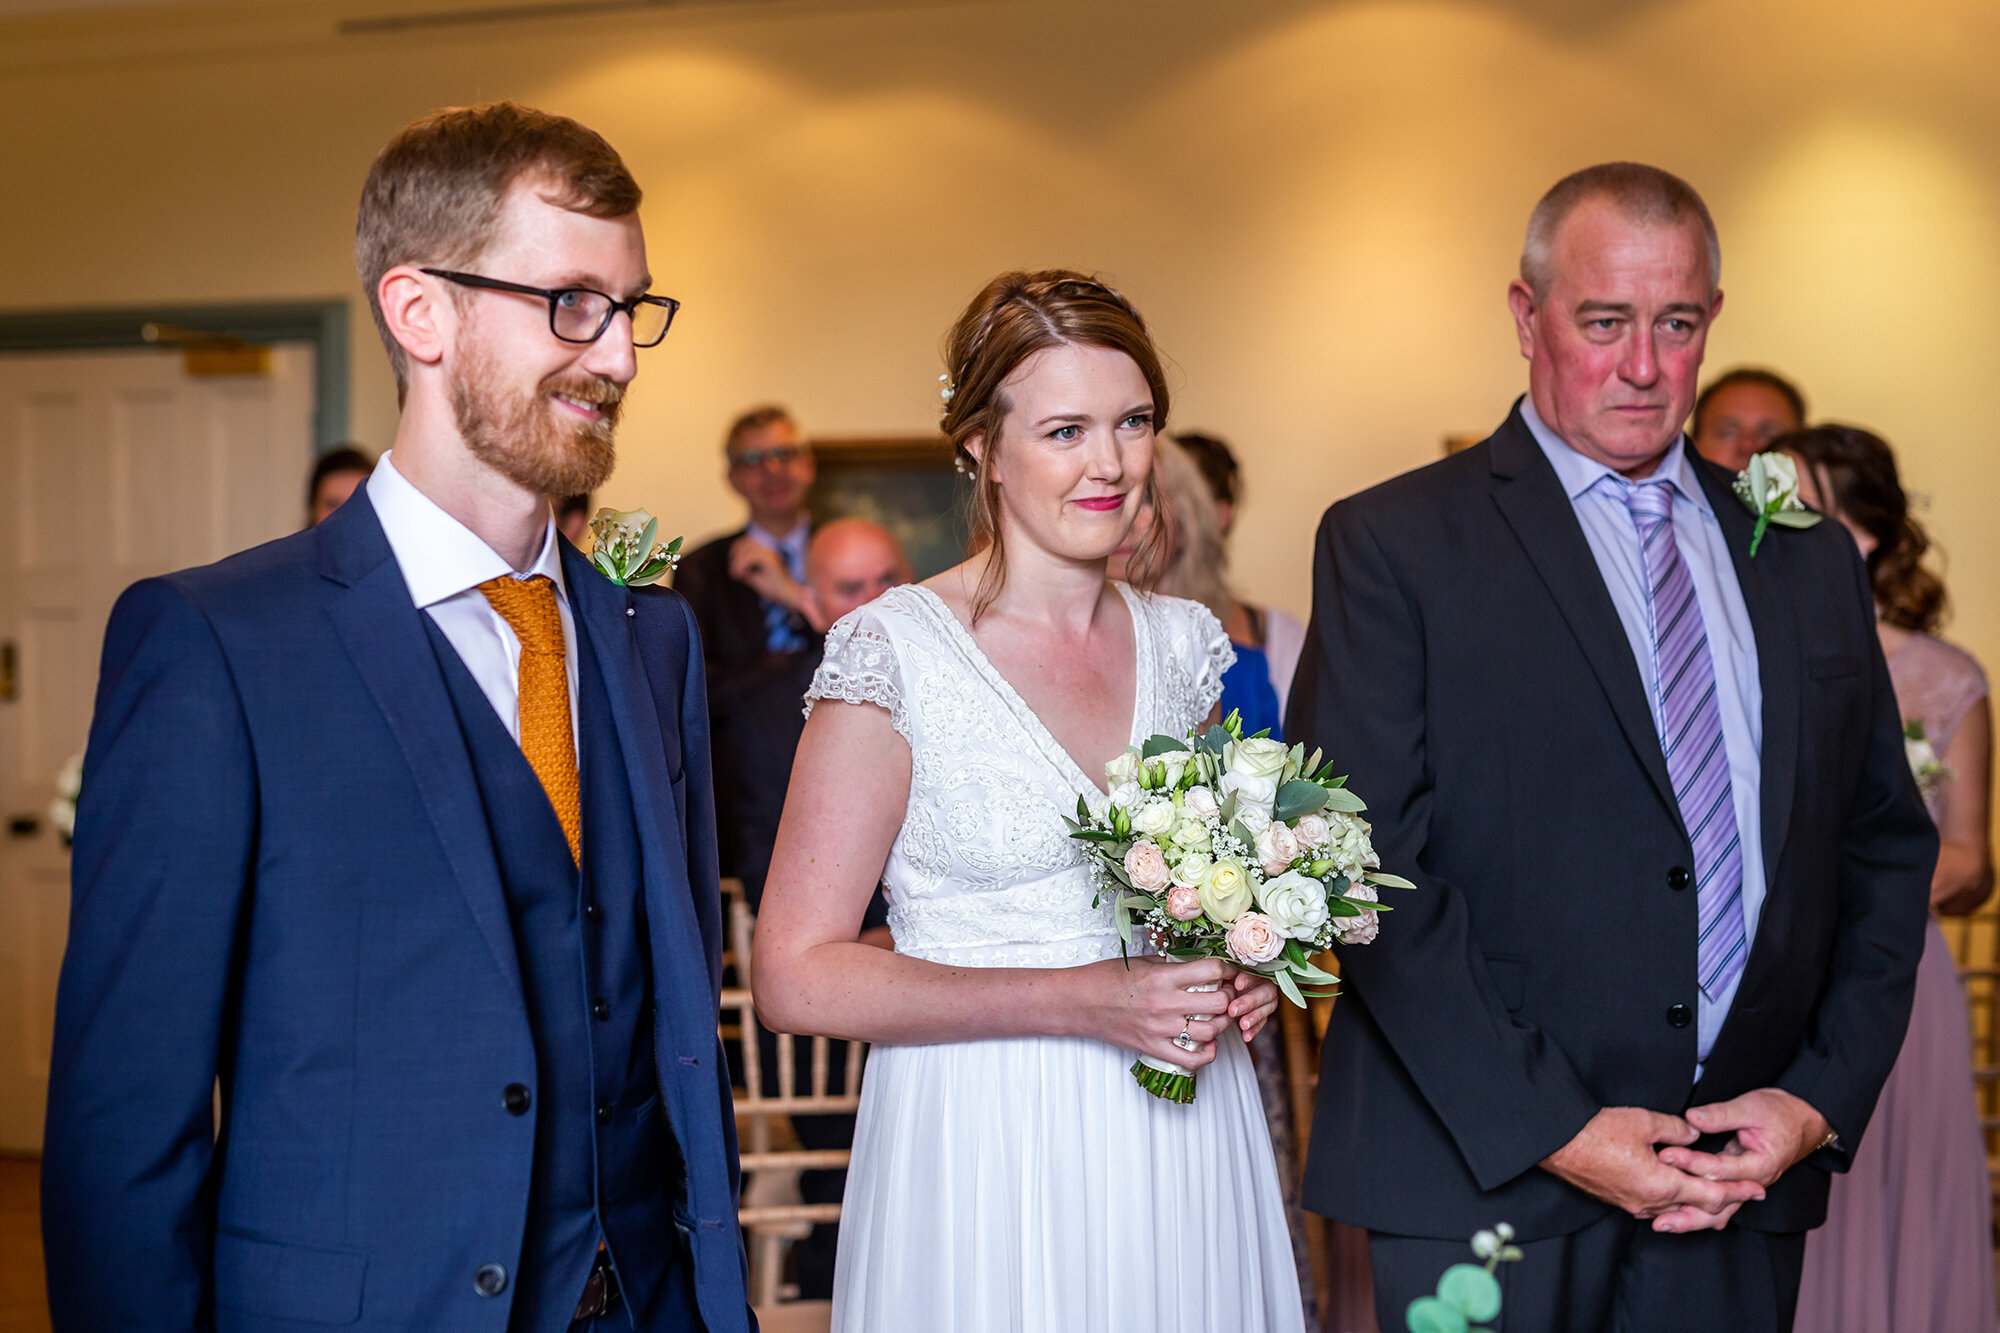 R&T Assembly House Norwich Wedding Photography (9).JPG